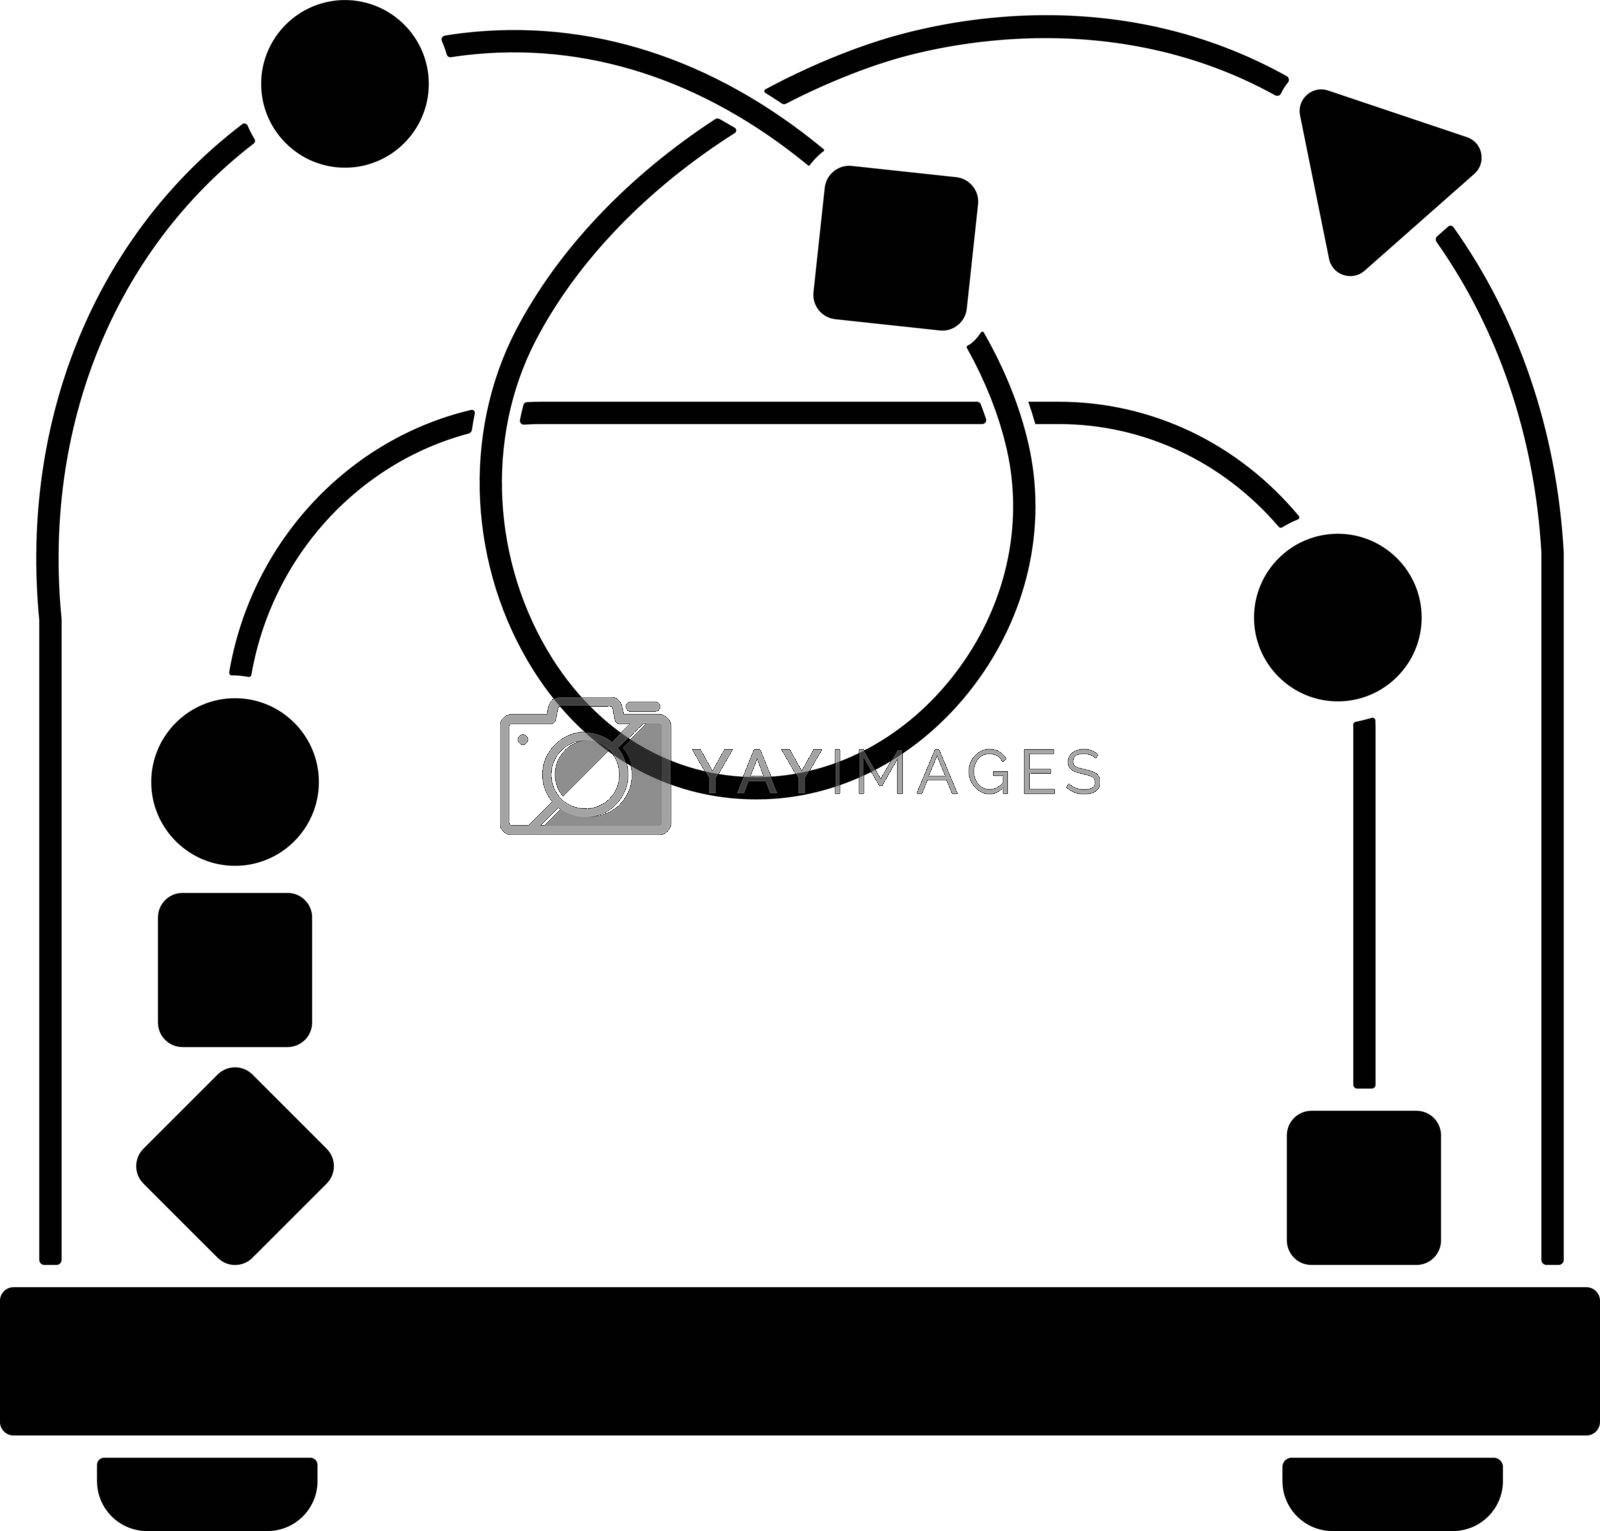 Bead maze toy black glyph icon. Roller coaster and labyrinth educational toys for kids. Shape and color recognition game. Silhouette symbol on white space. Vector isolated illustration